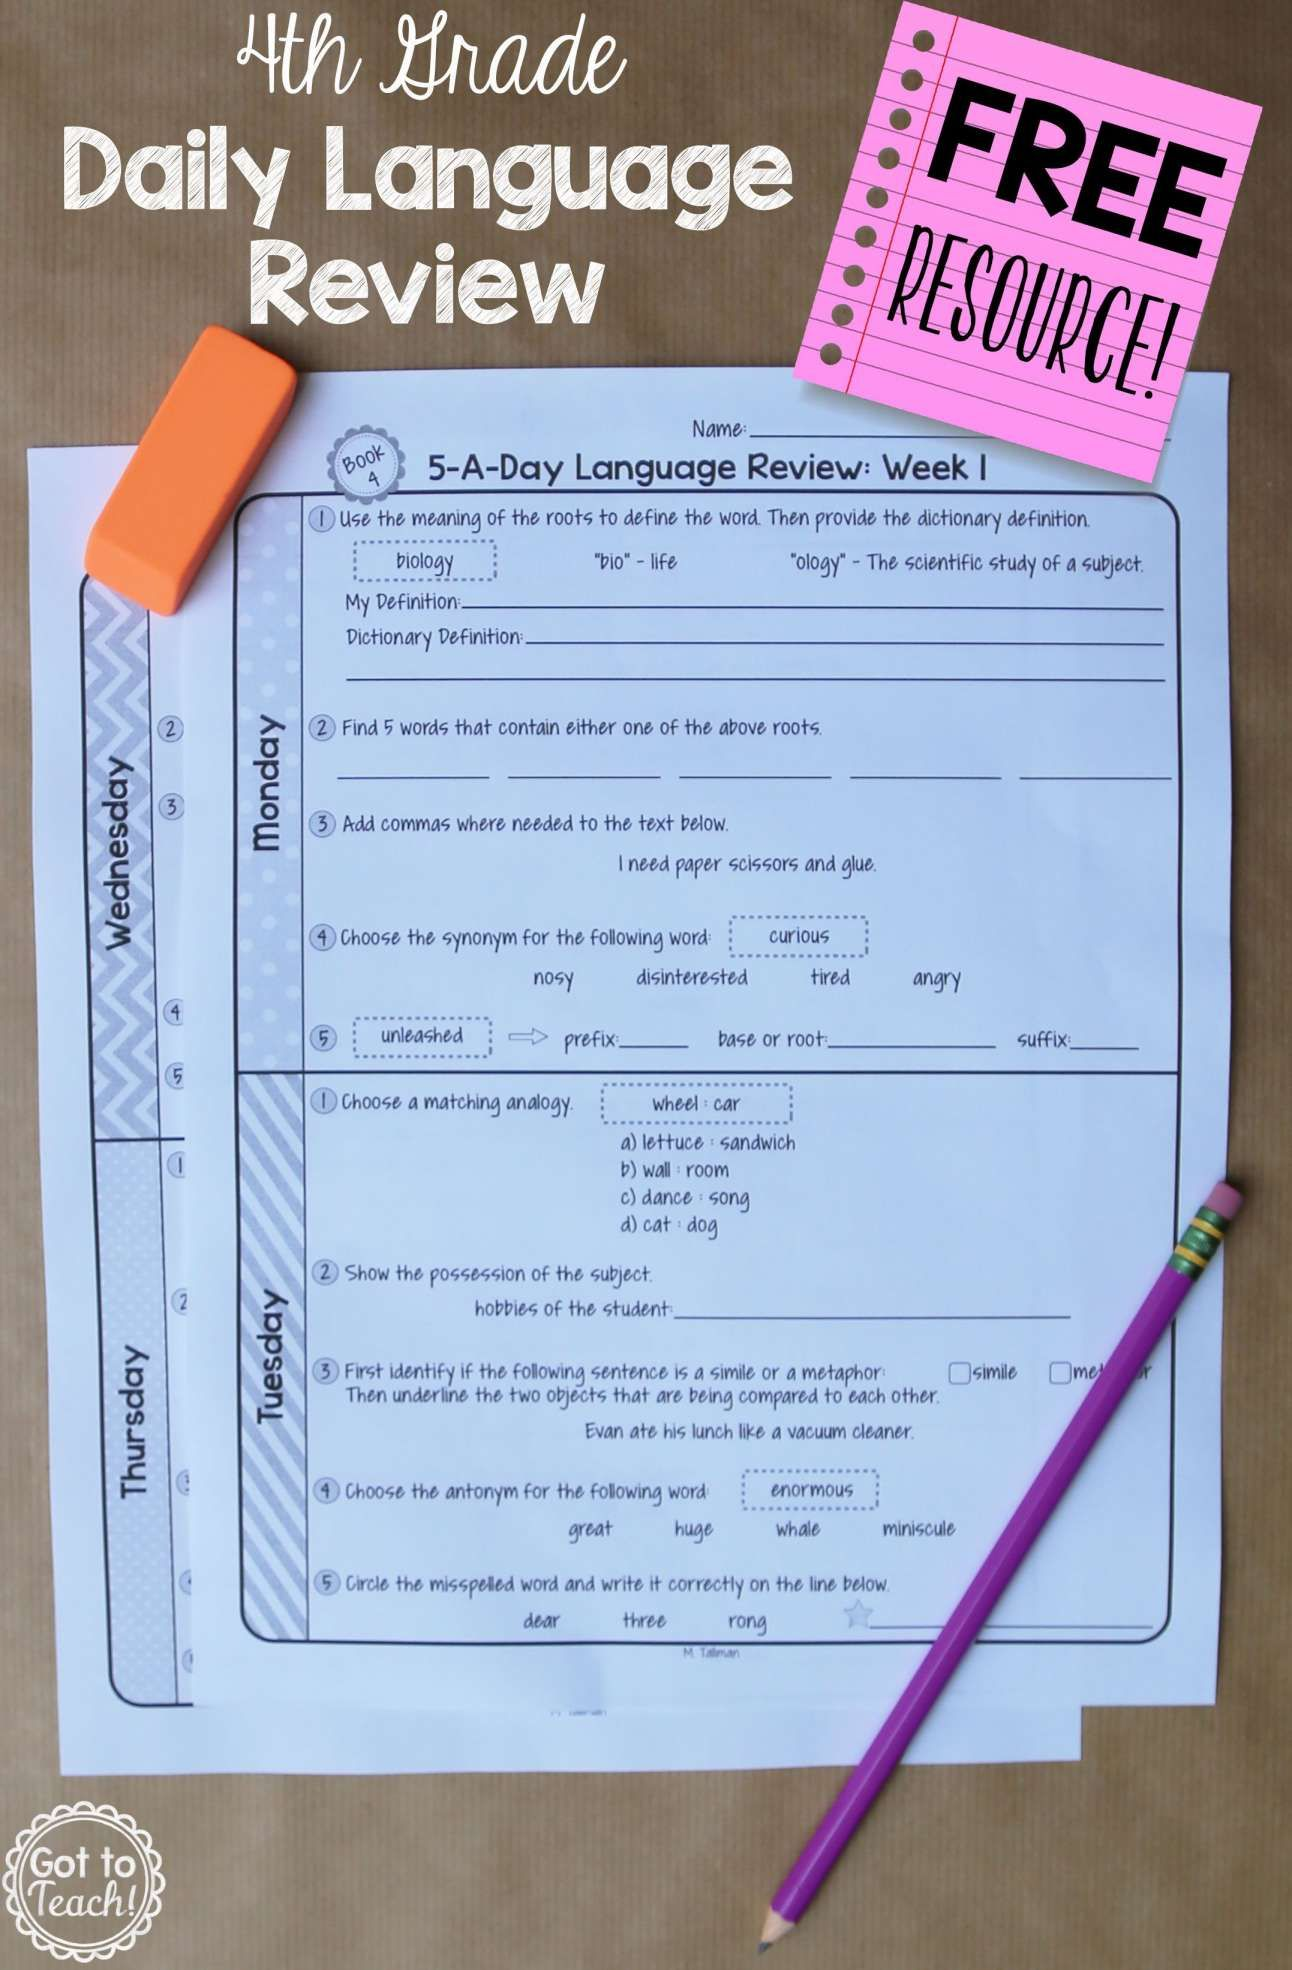 10 4th Grade Daily Language Review Worksheets